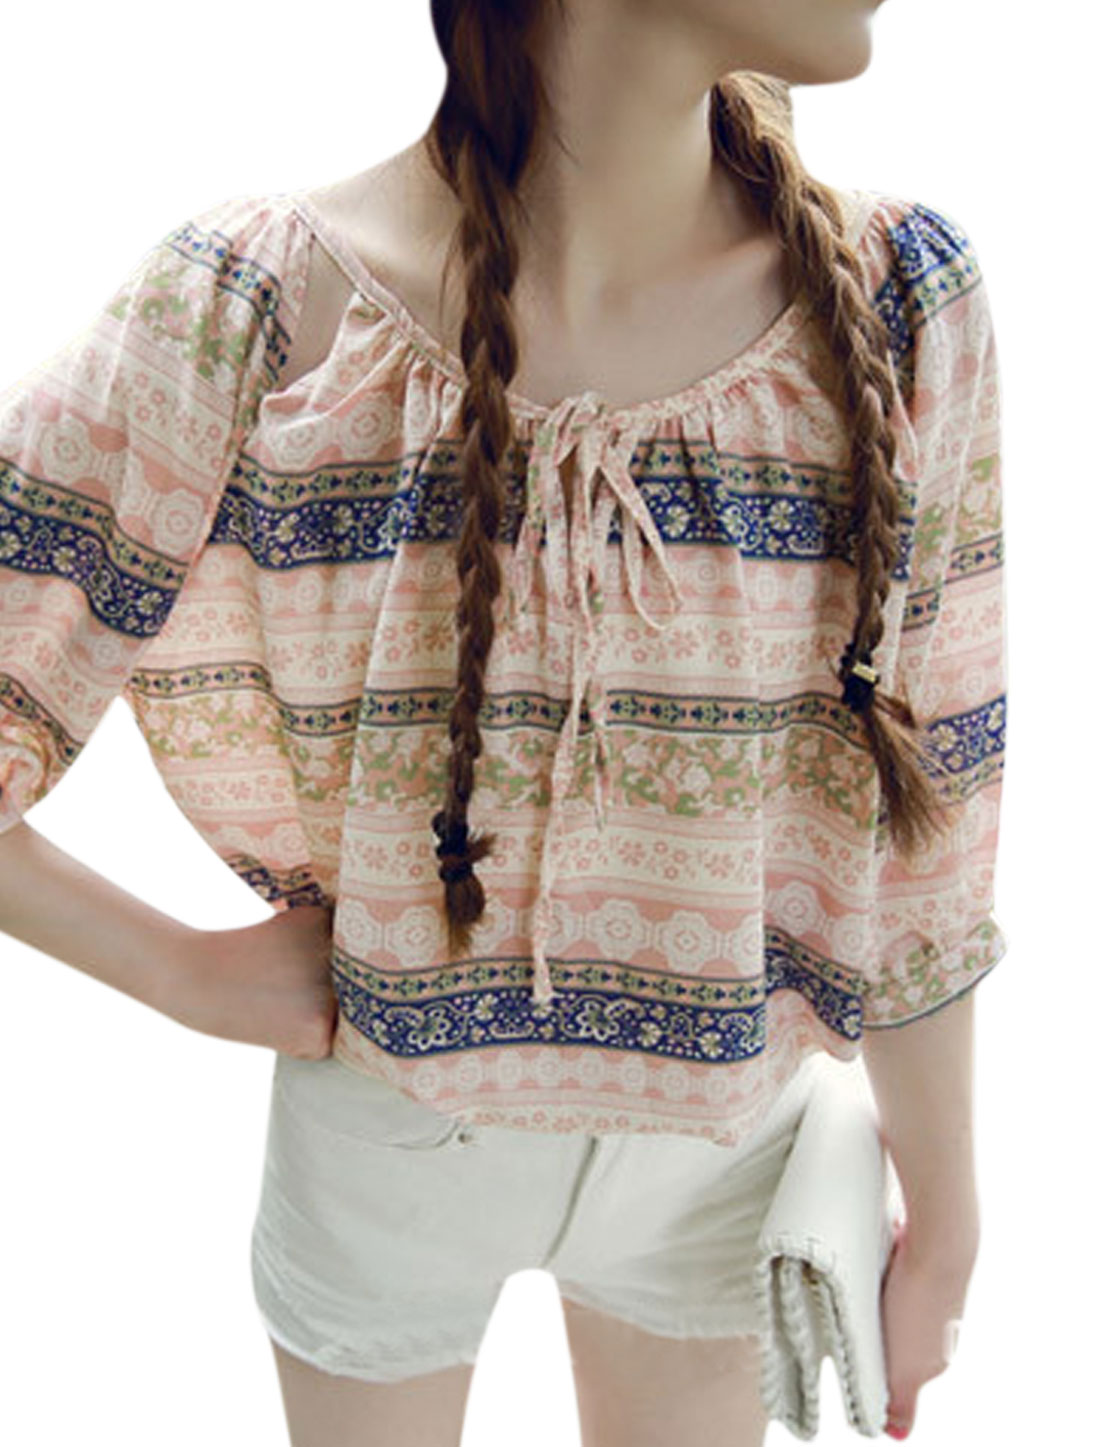 Women Scoop Neck 3/4 Sleeves Novelty Prints Casual Tops Pale Pink S